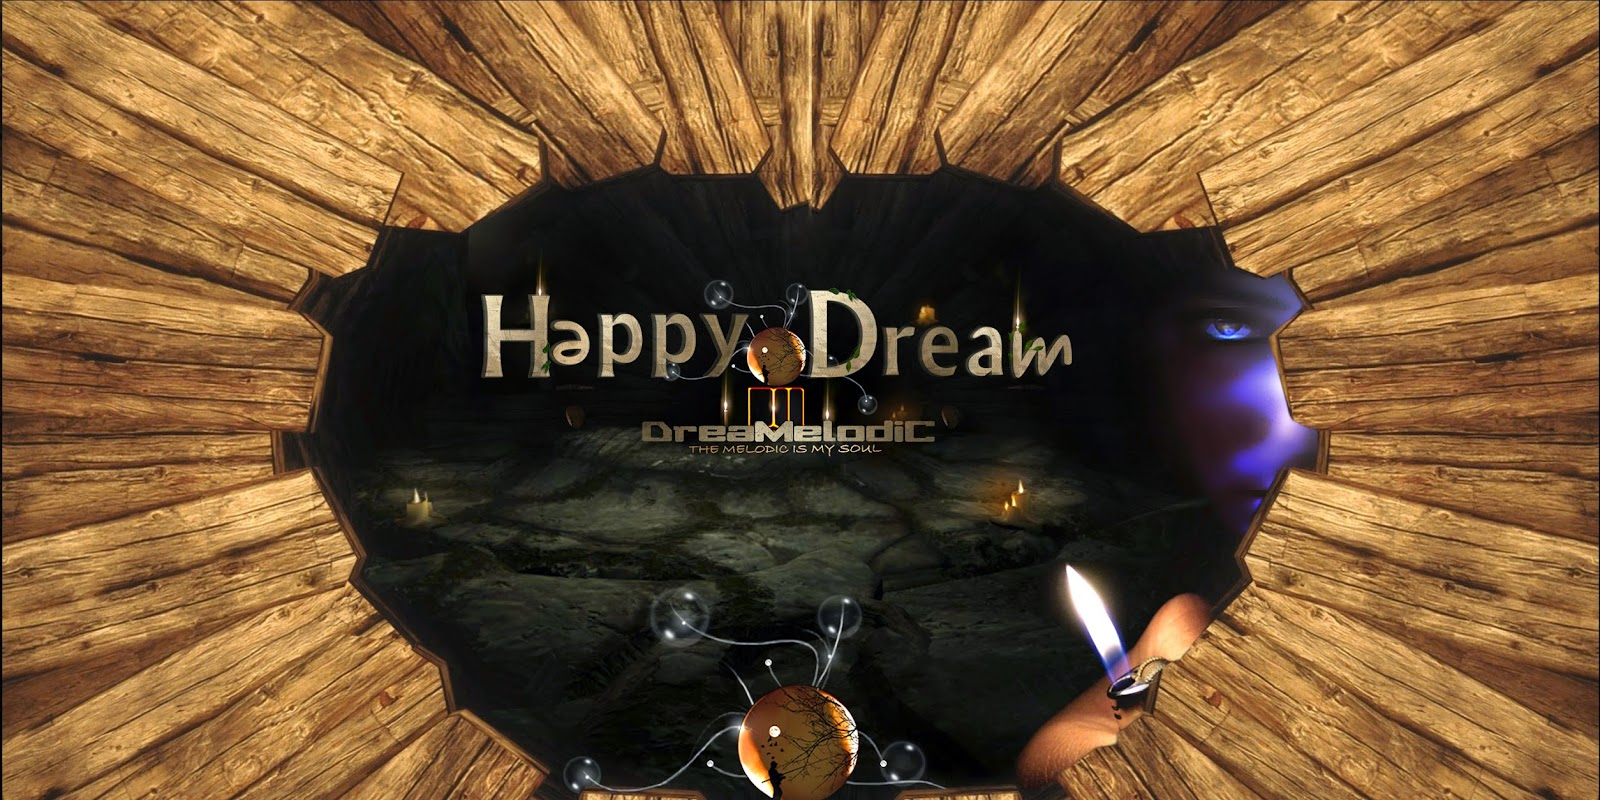 DreaMelodiC - HAPPY DREAM (Full Album Extended Version)